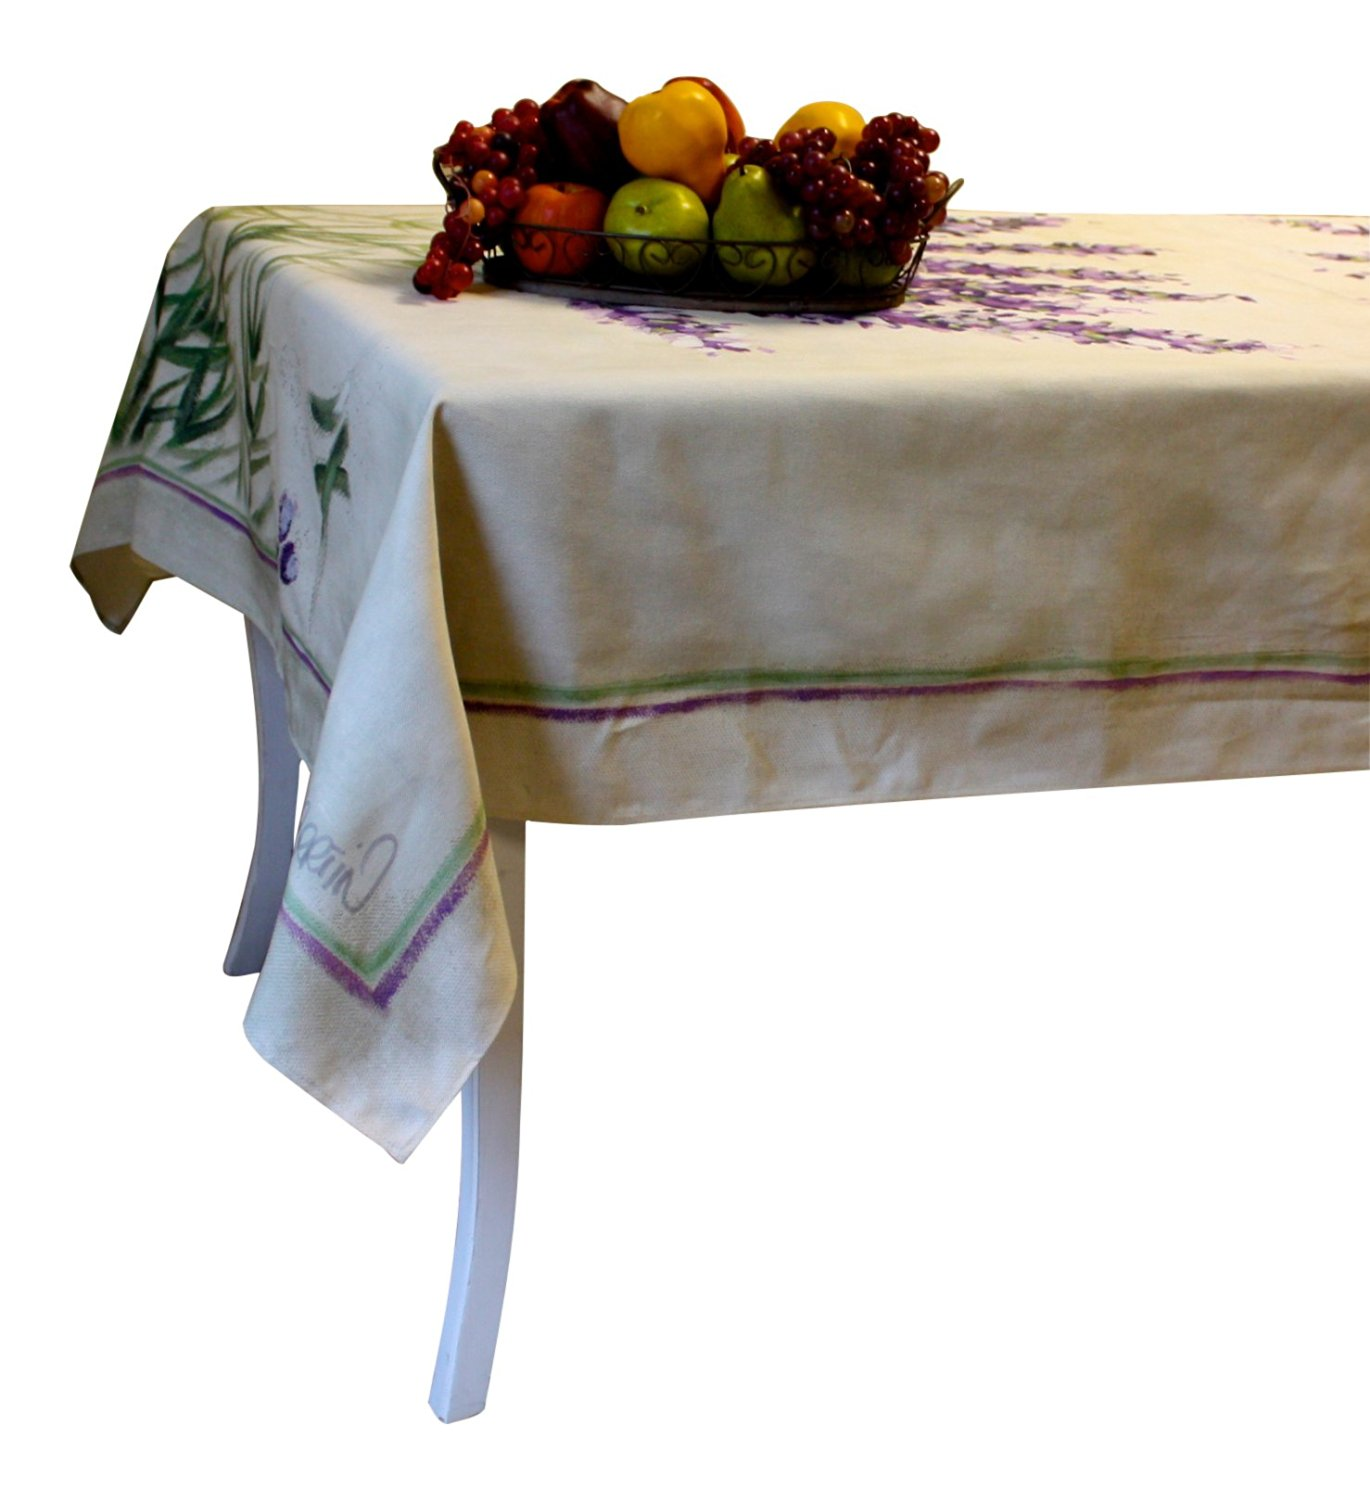 """Provence Tablecloth, French vintage design """"Lavender"""", Rectangular 98"""" x 63"""", 100% Cotton Twill - Made in France"""